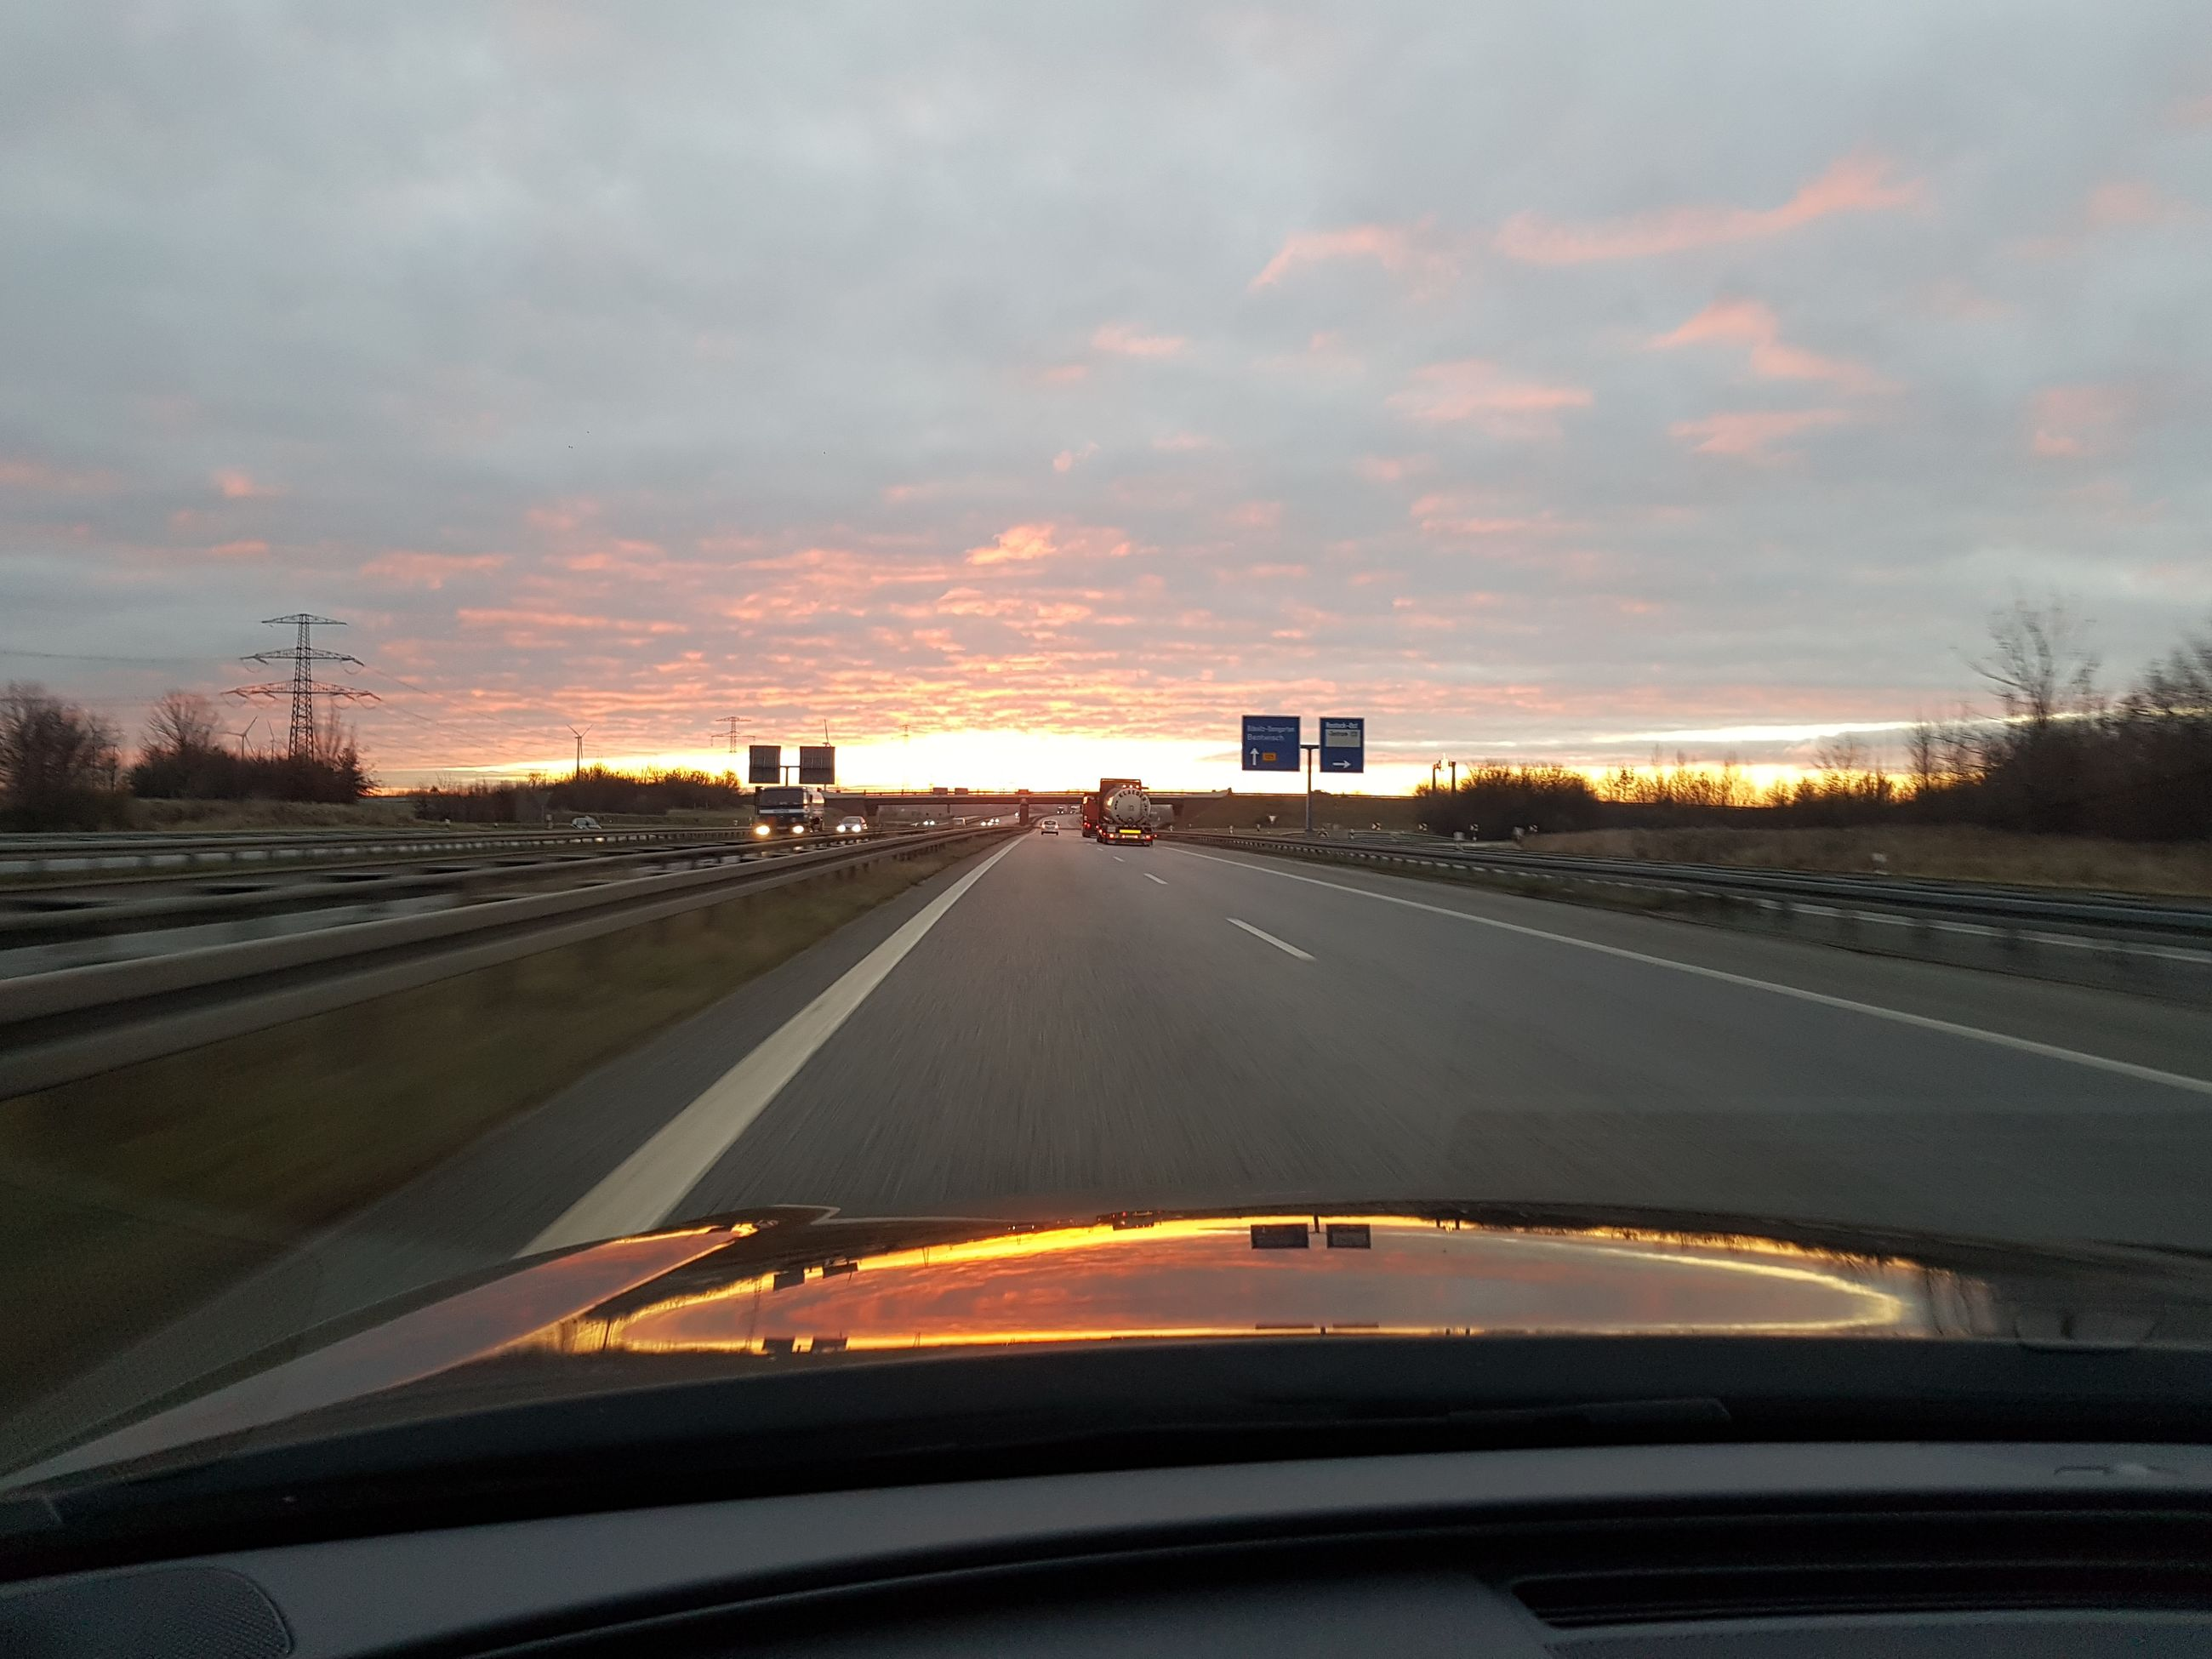 car, driving, transportation, road, the way forward, travel, windshield, sunset, car point of view, cloud - sky, mode of transport, highway, car interior, blurred motion, sky, two lane highway, motion, land vehicle, no people, speed, outdoors, vehicle mirror, day